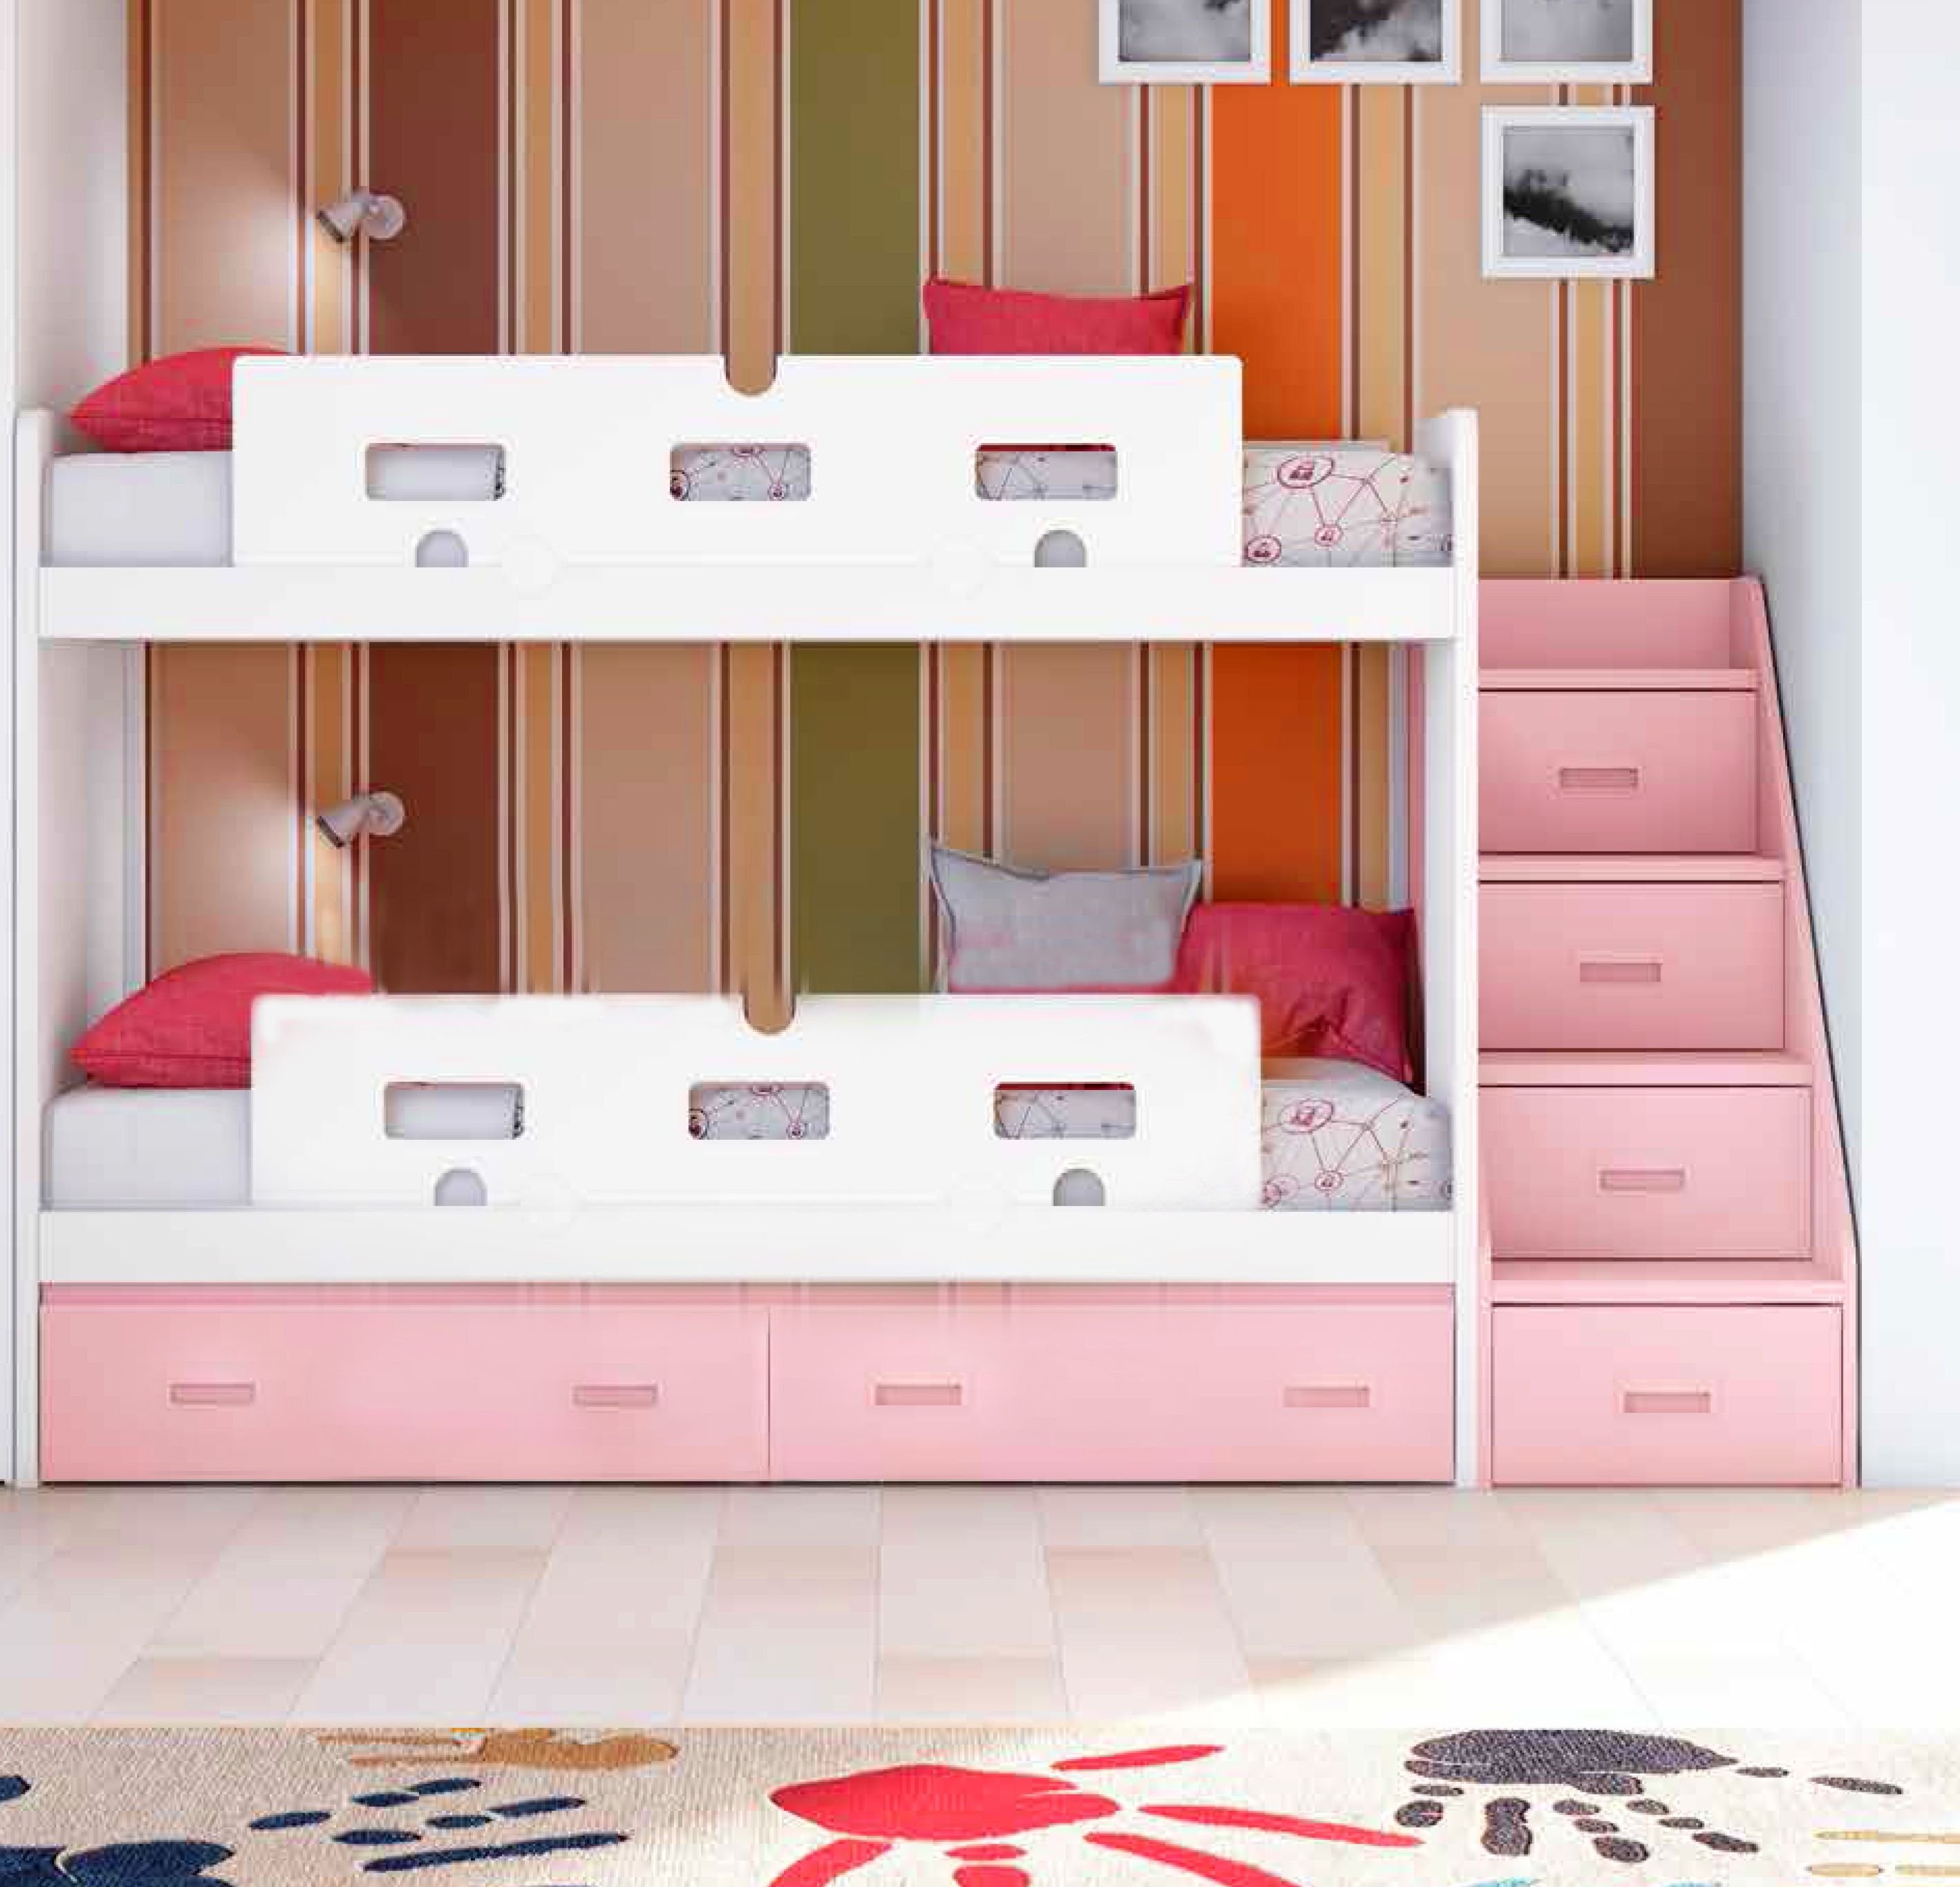 pingl par annouck m sur chambre filles pinterest lit superpos fille lit superpos et. Black Bedroom Furniture Sets. Home Design Ideas